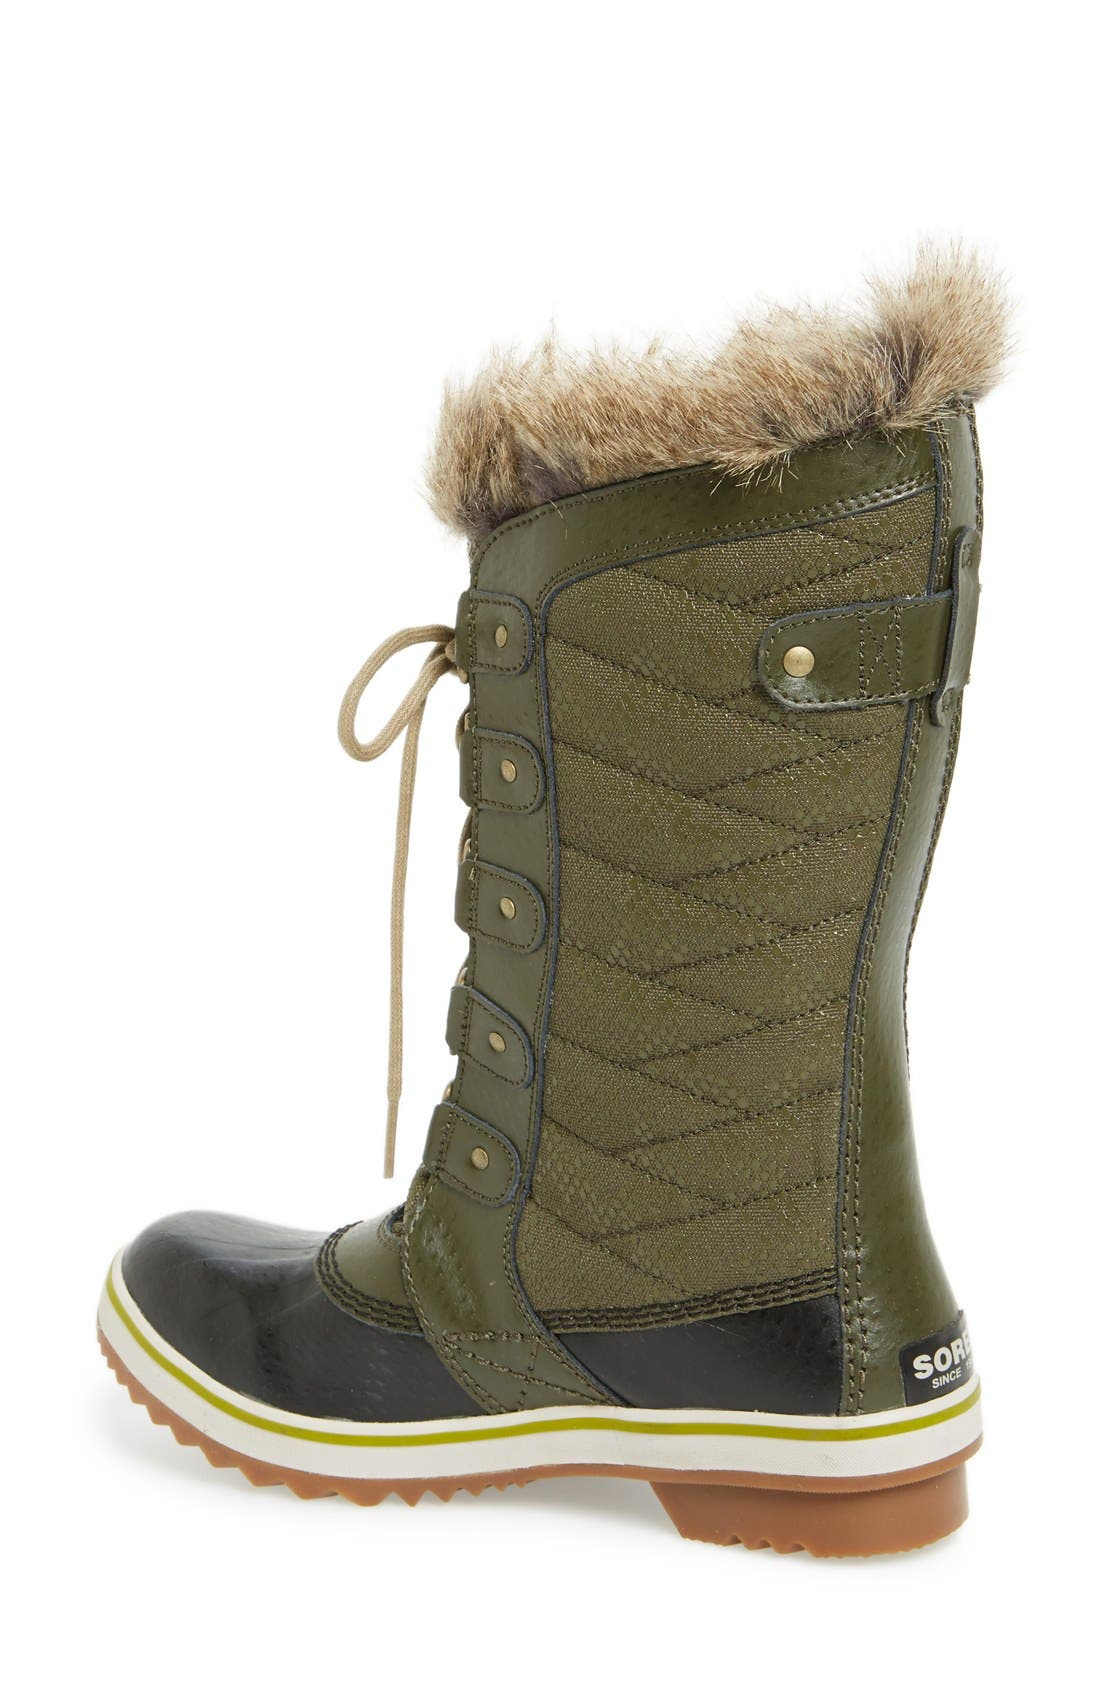 'Tofino II' Faux Fur Lined Waterproof Boot,                             Alternate thumbnail 2, color,                             Peatmoss